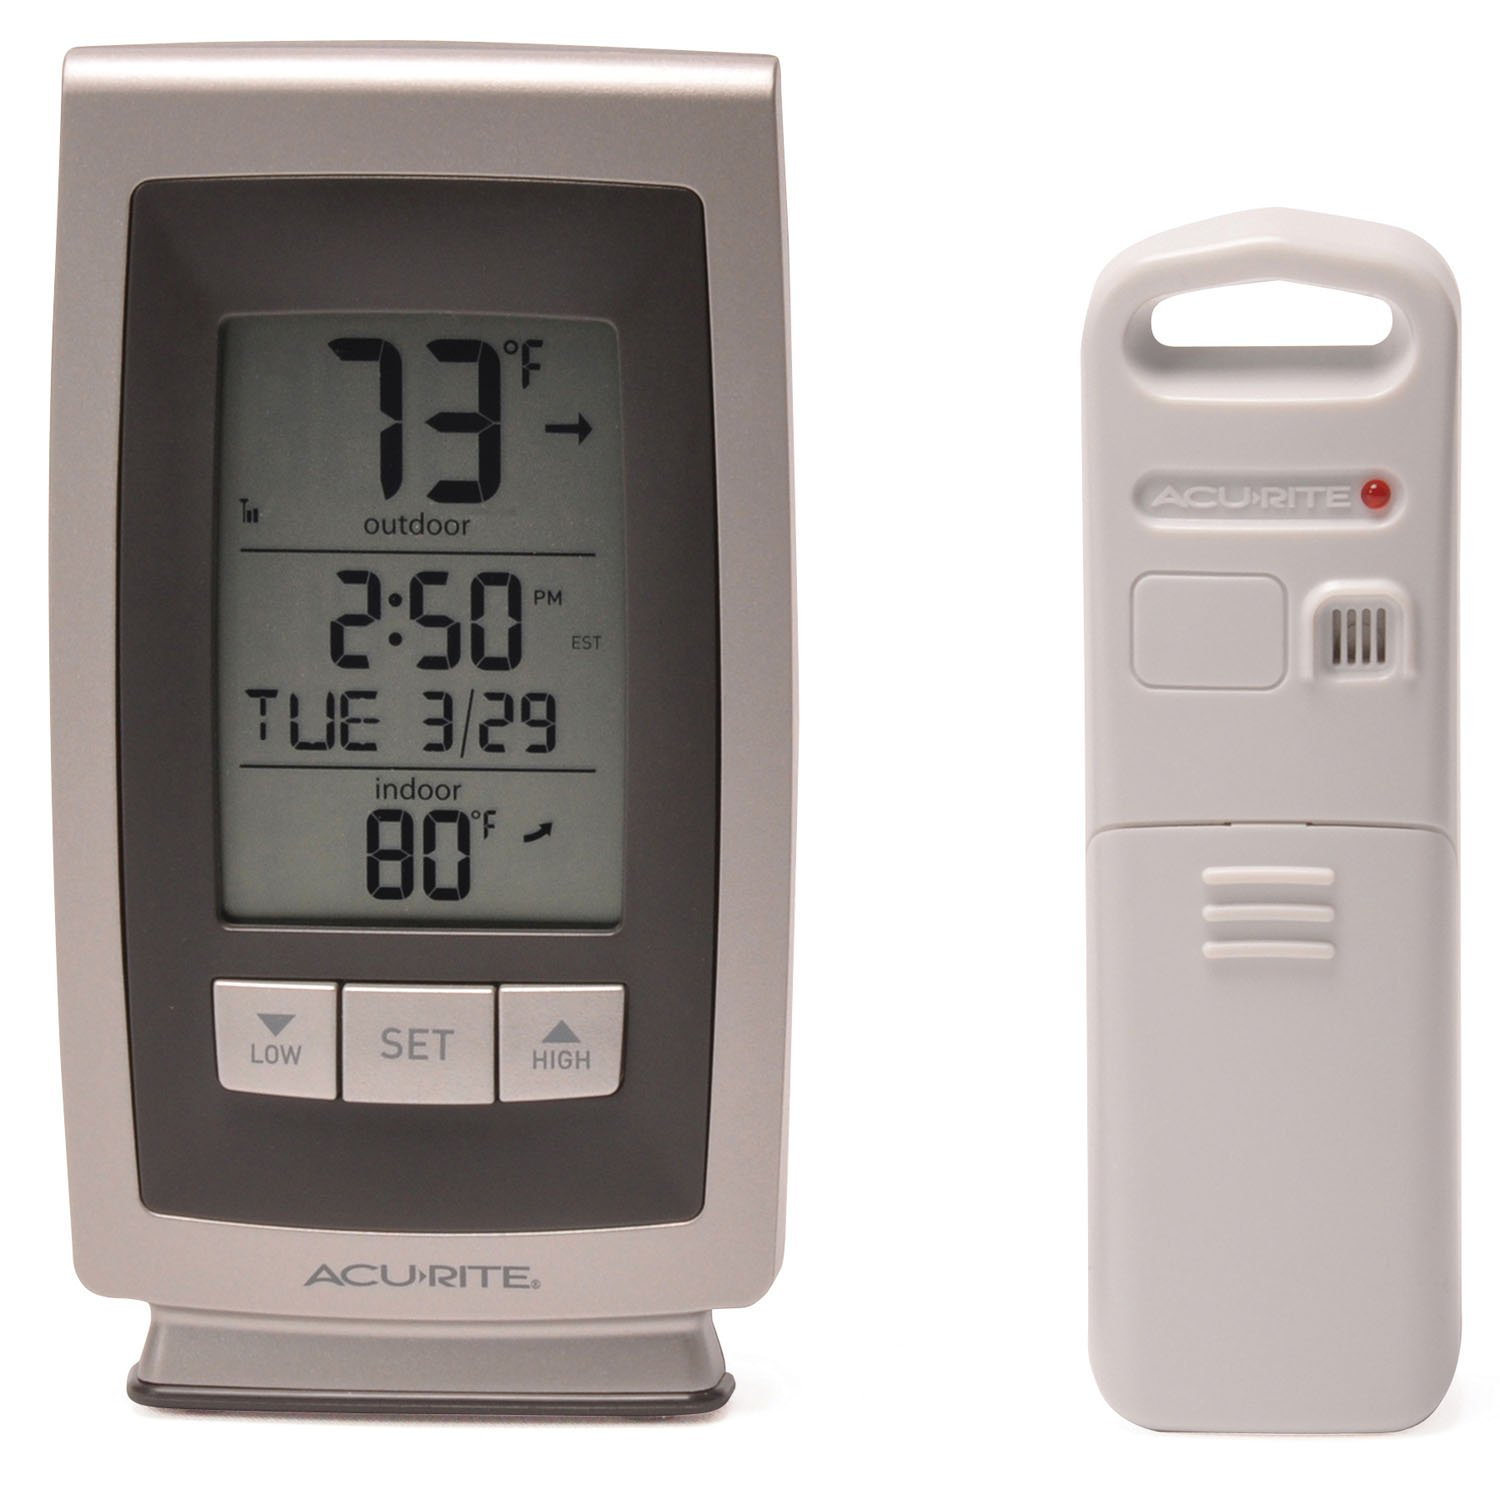 acurite model 00782 manual how to and user guide instructions u2022 rh taxibermuda co acurite thermometer manual 00609 acurite thermometer manual 00592tx